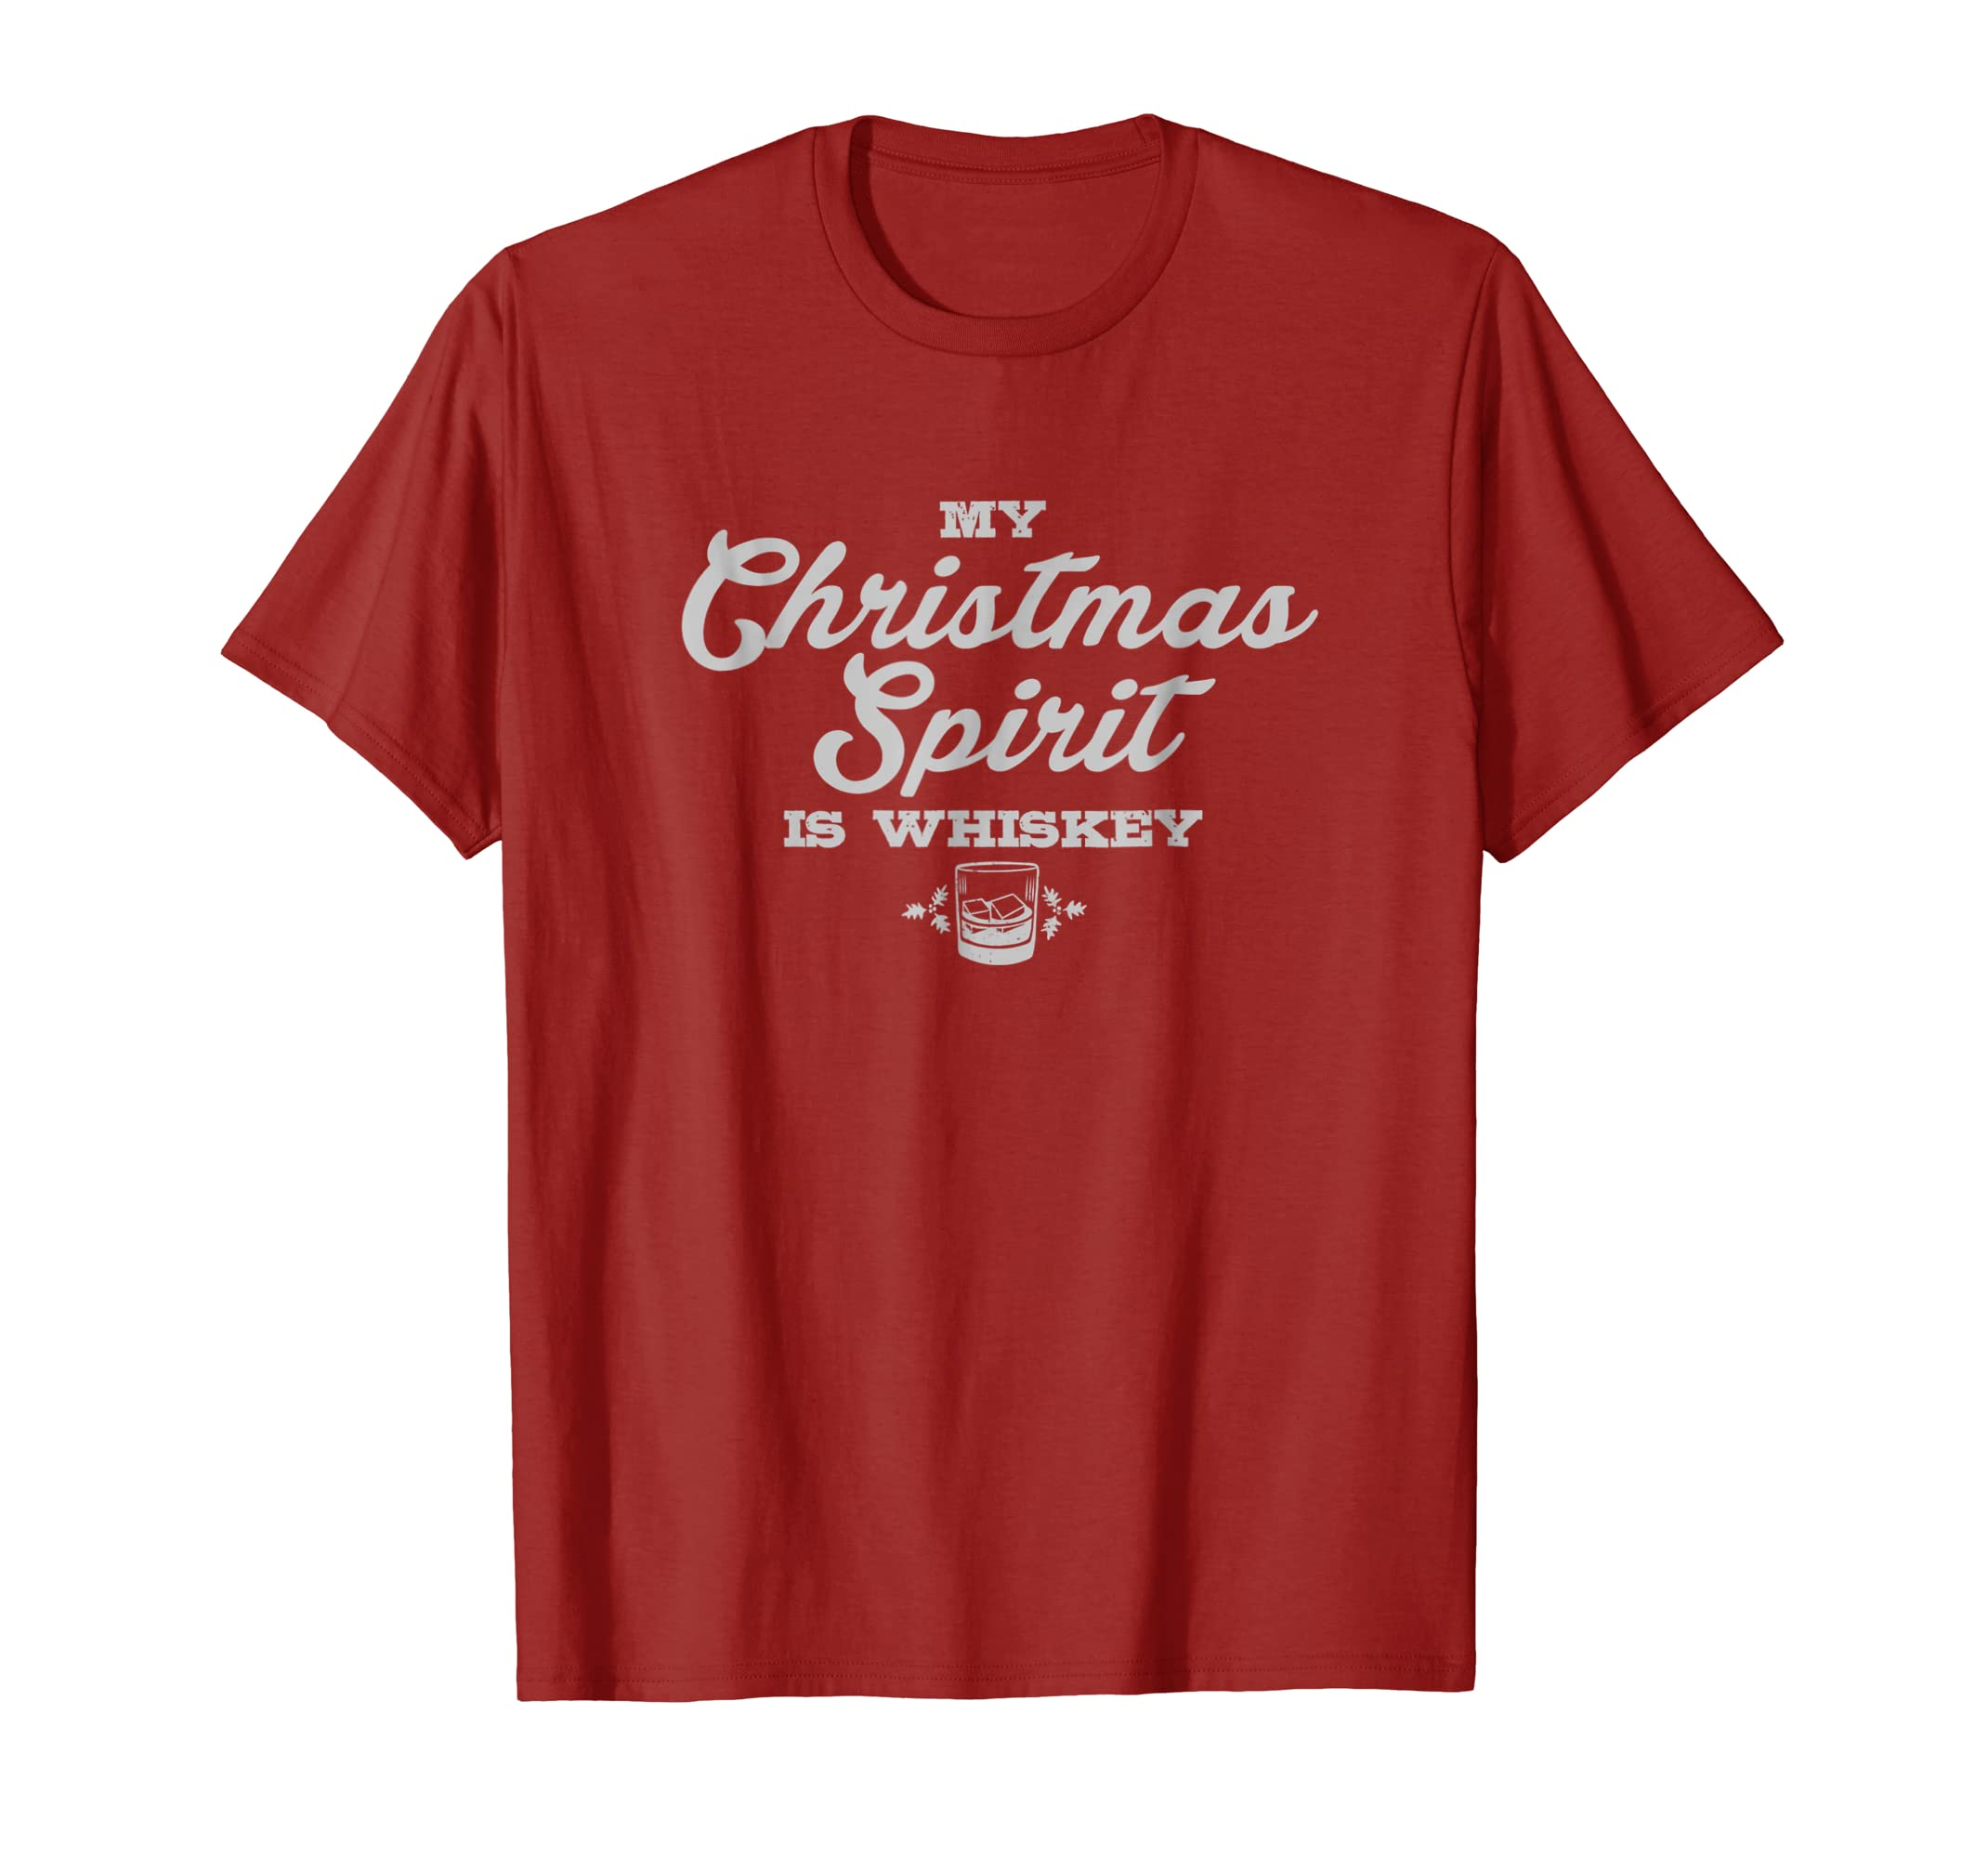 a5c7ffe071 Amazon.com: Funny Christmas Alcohol Drinking Whiskey Saying Gift Tshirt:  Clothing